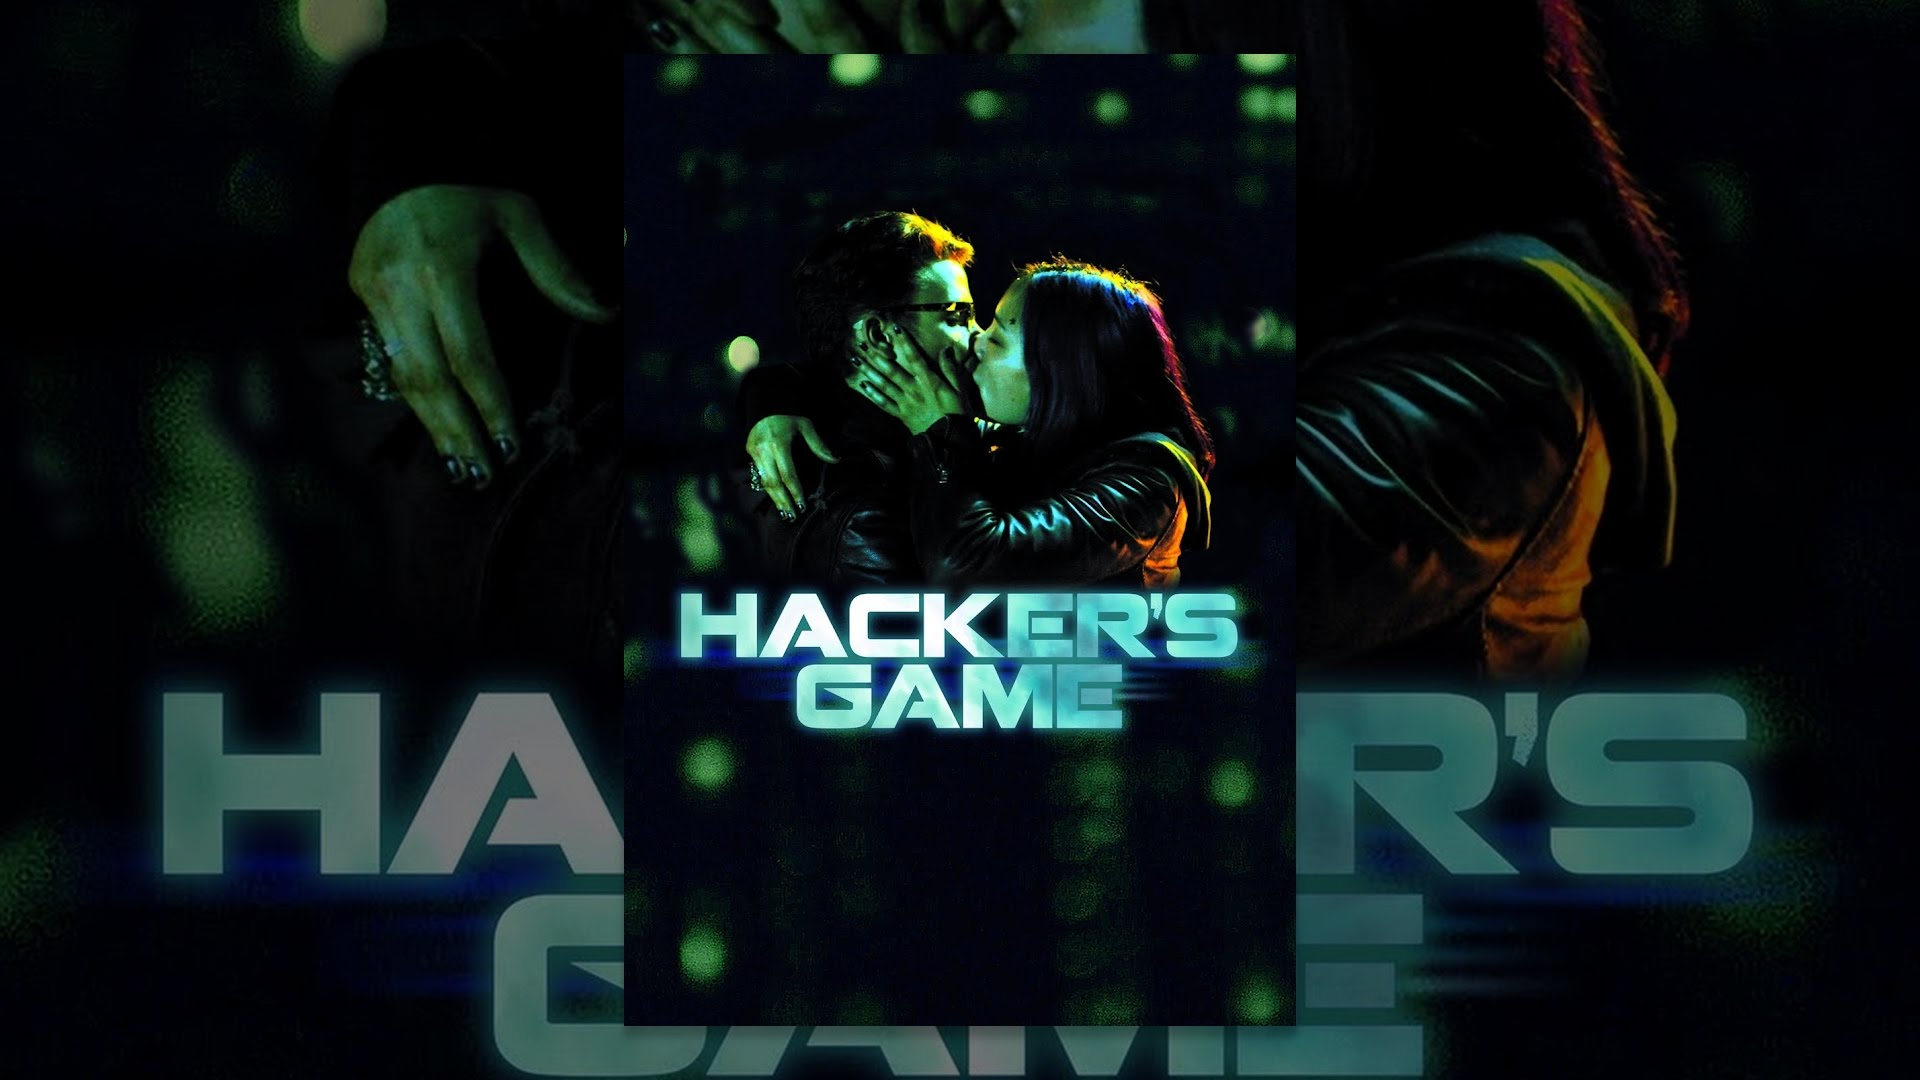 Hacker's Game (OmU)